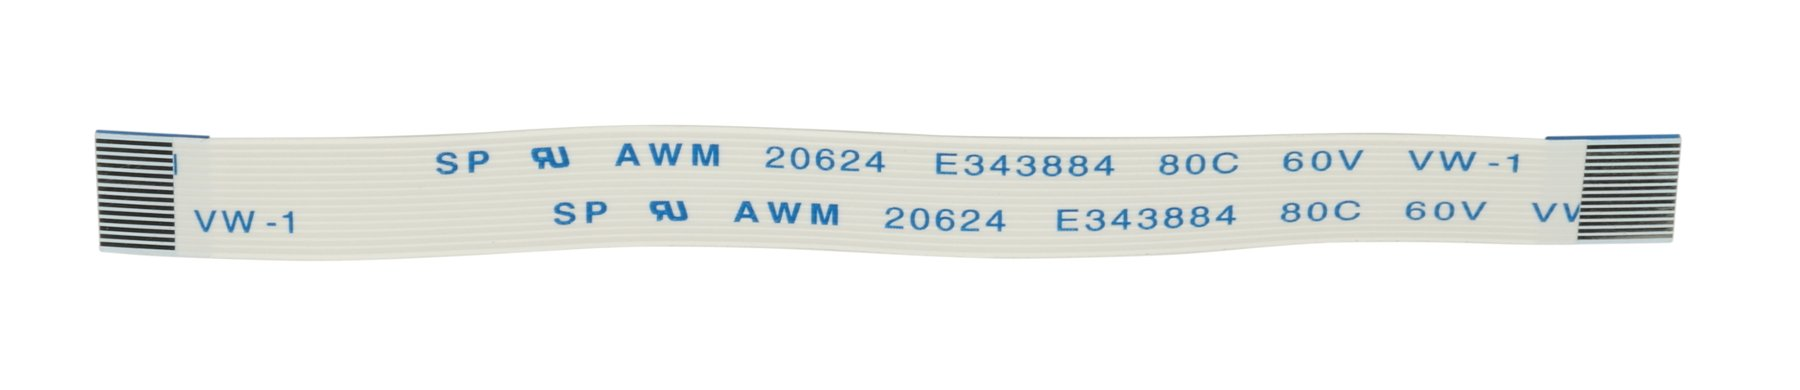 Line 6 21-32-0009 Ribbon Cable for XDV35 and XDV70 21-32-0009